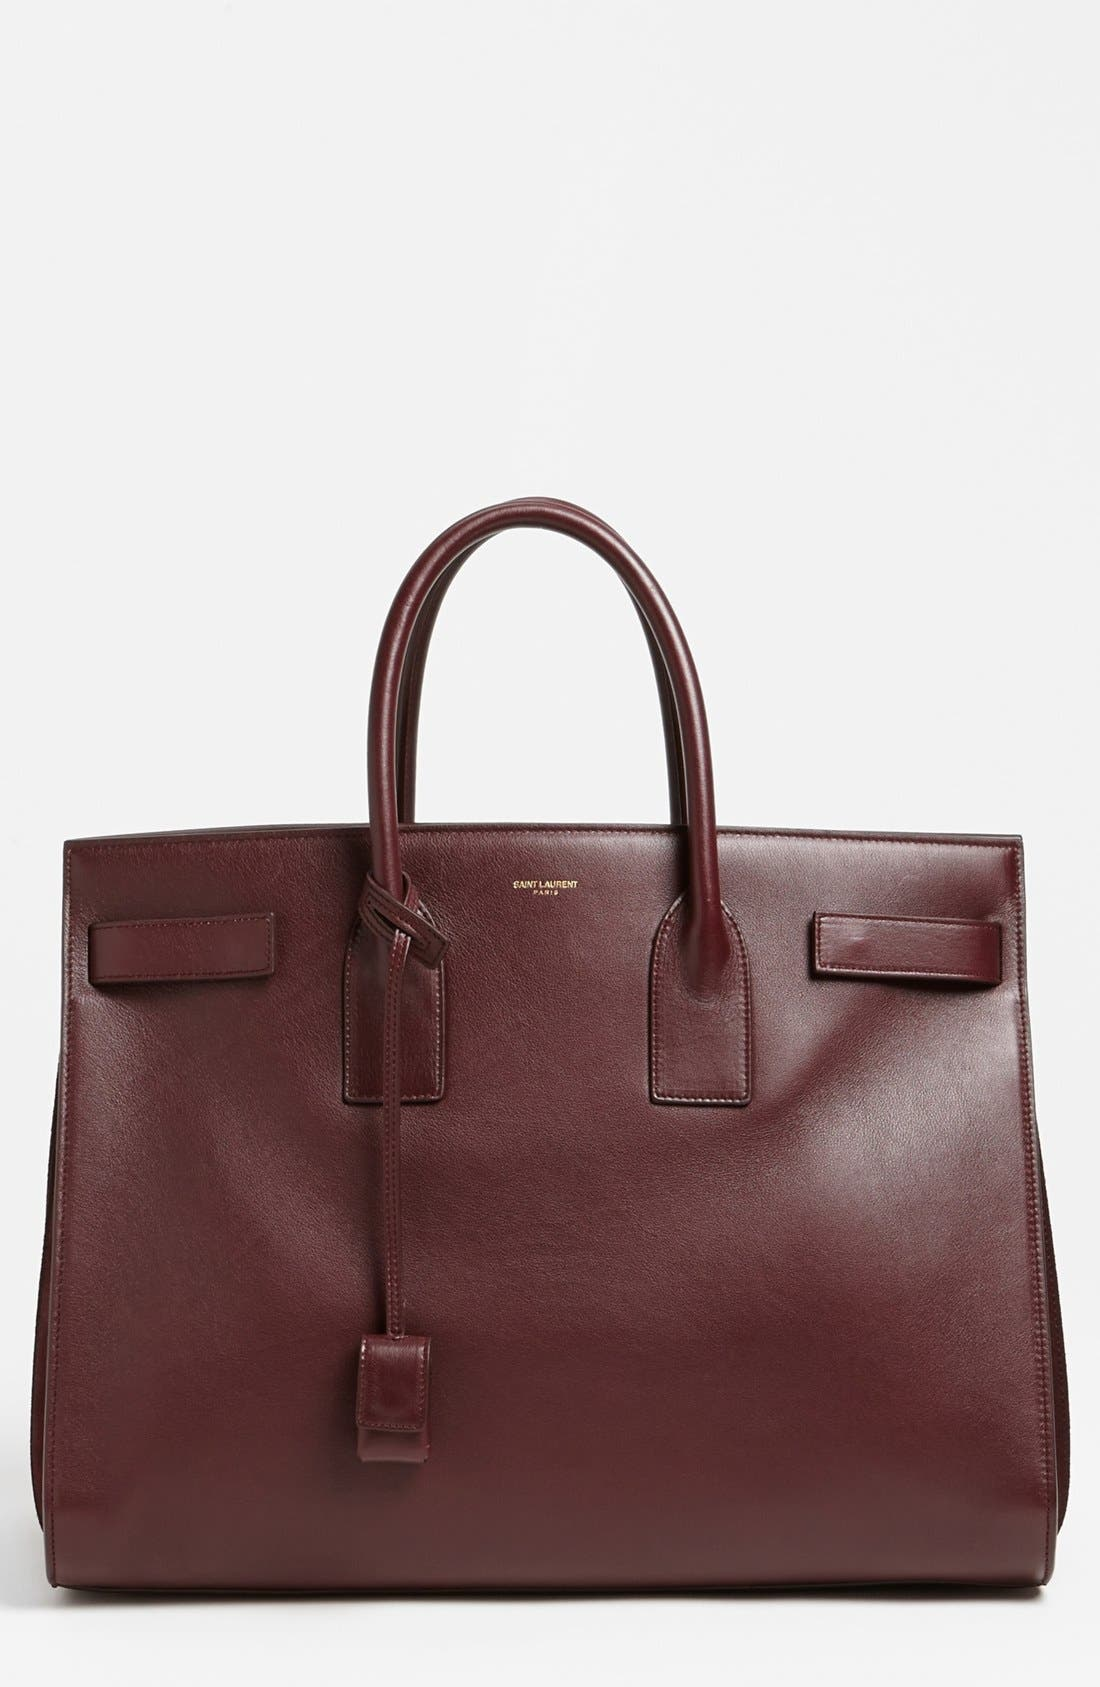 Main Image - Saint Laurent 'Sac de Jour' Leather Tote